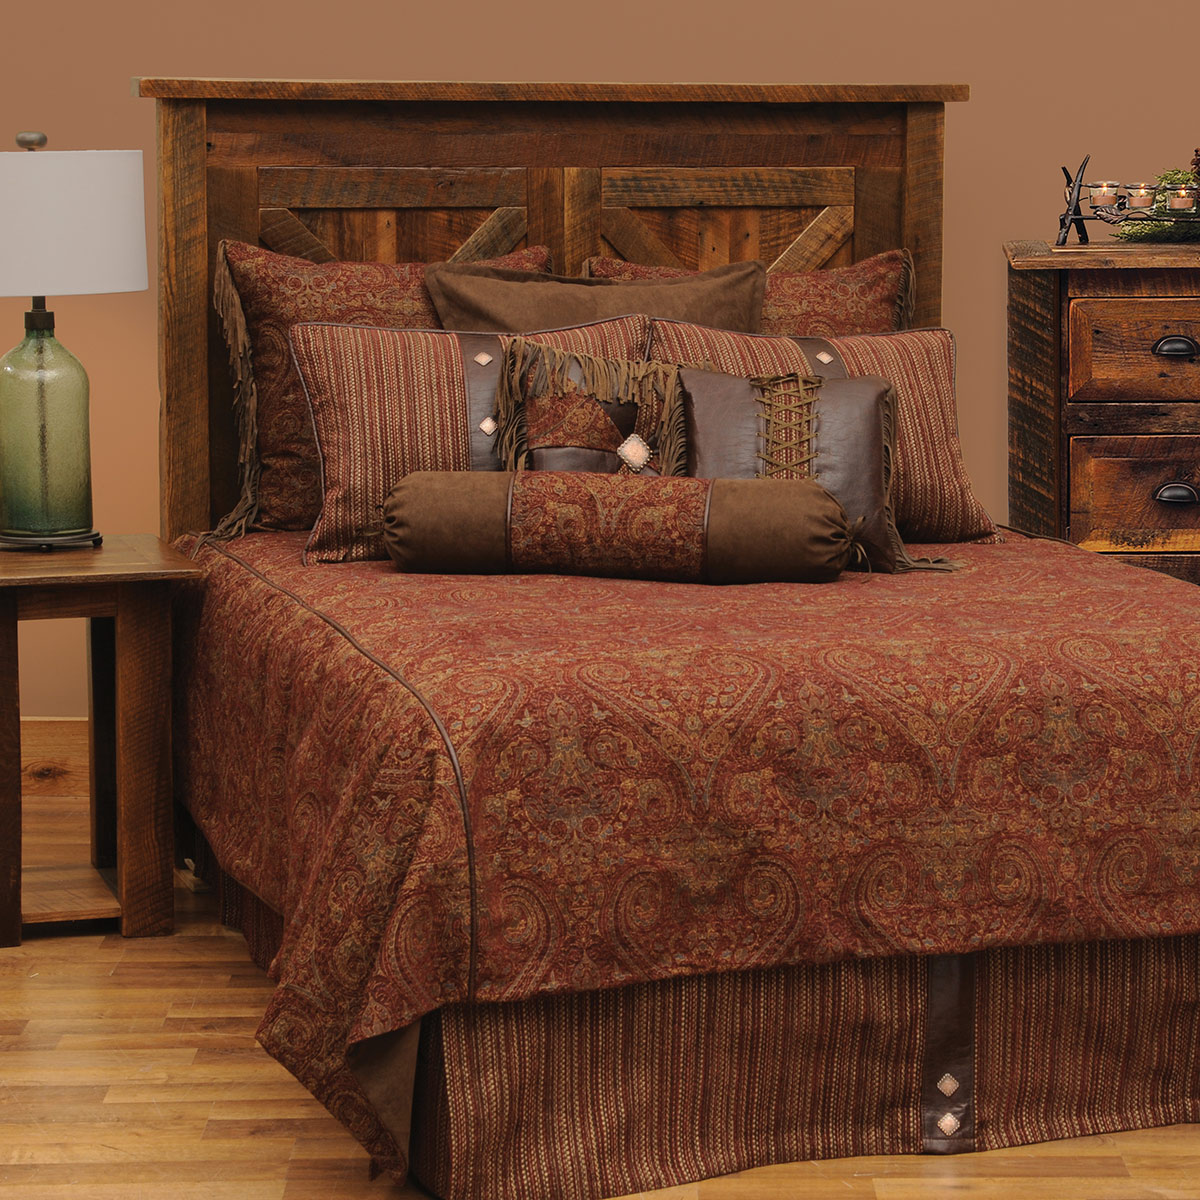 Milady II Basic Bed Set - Queen